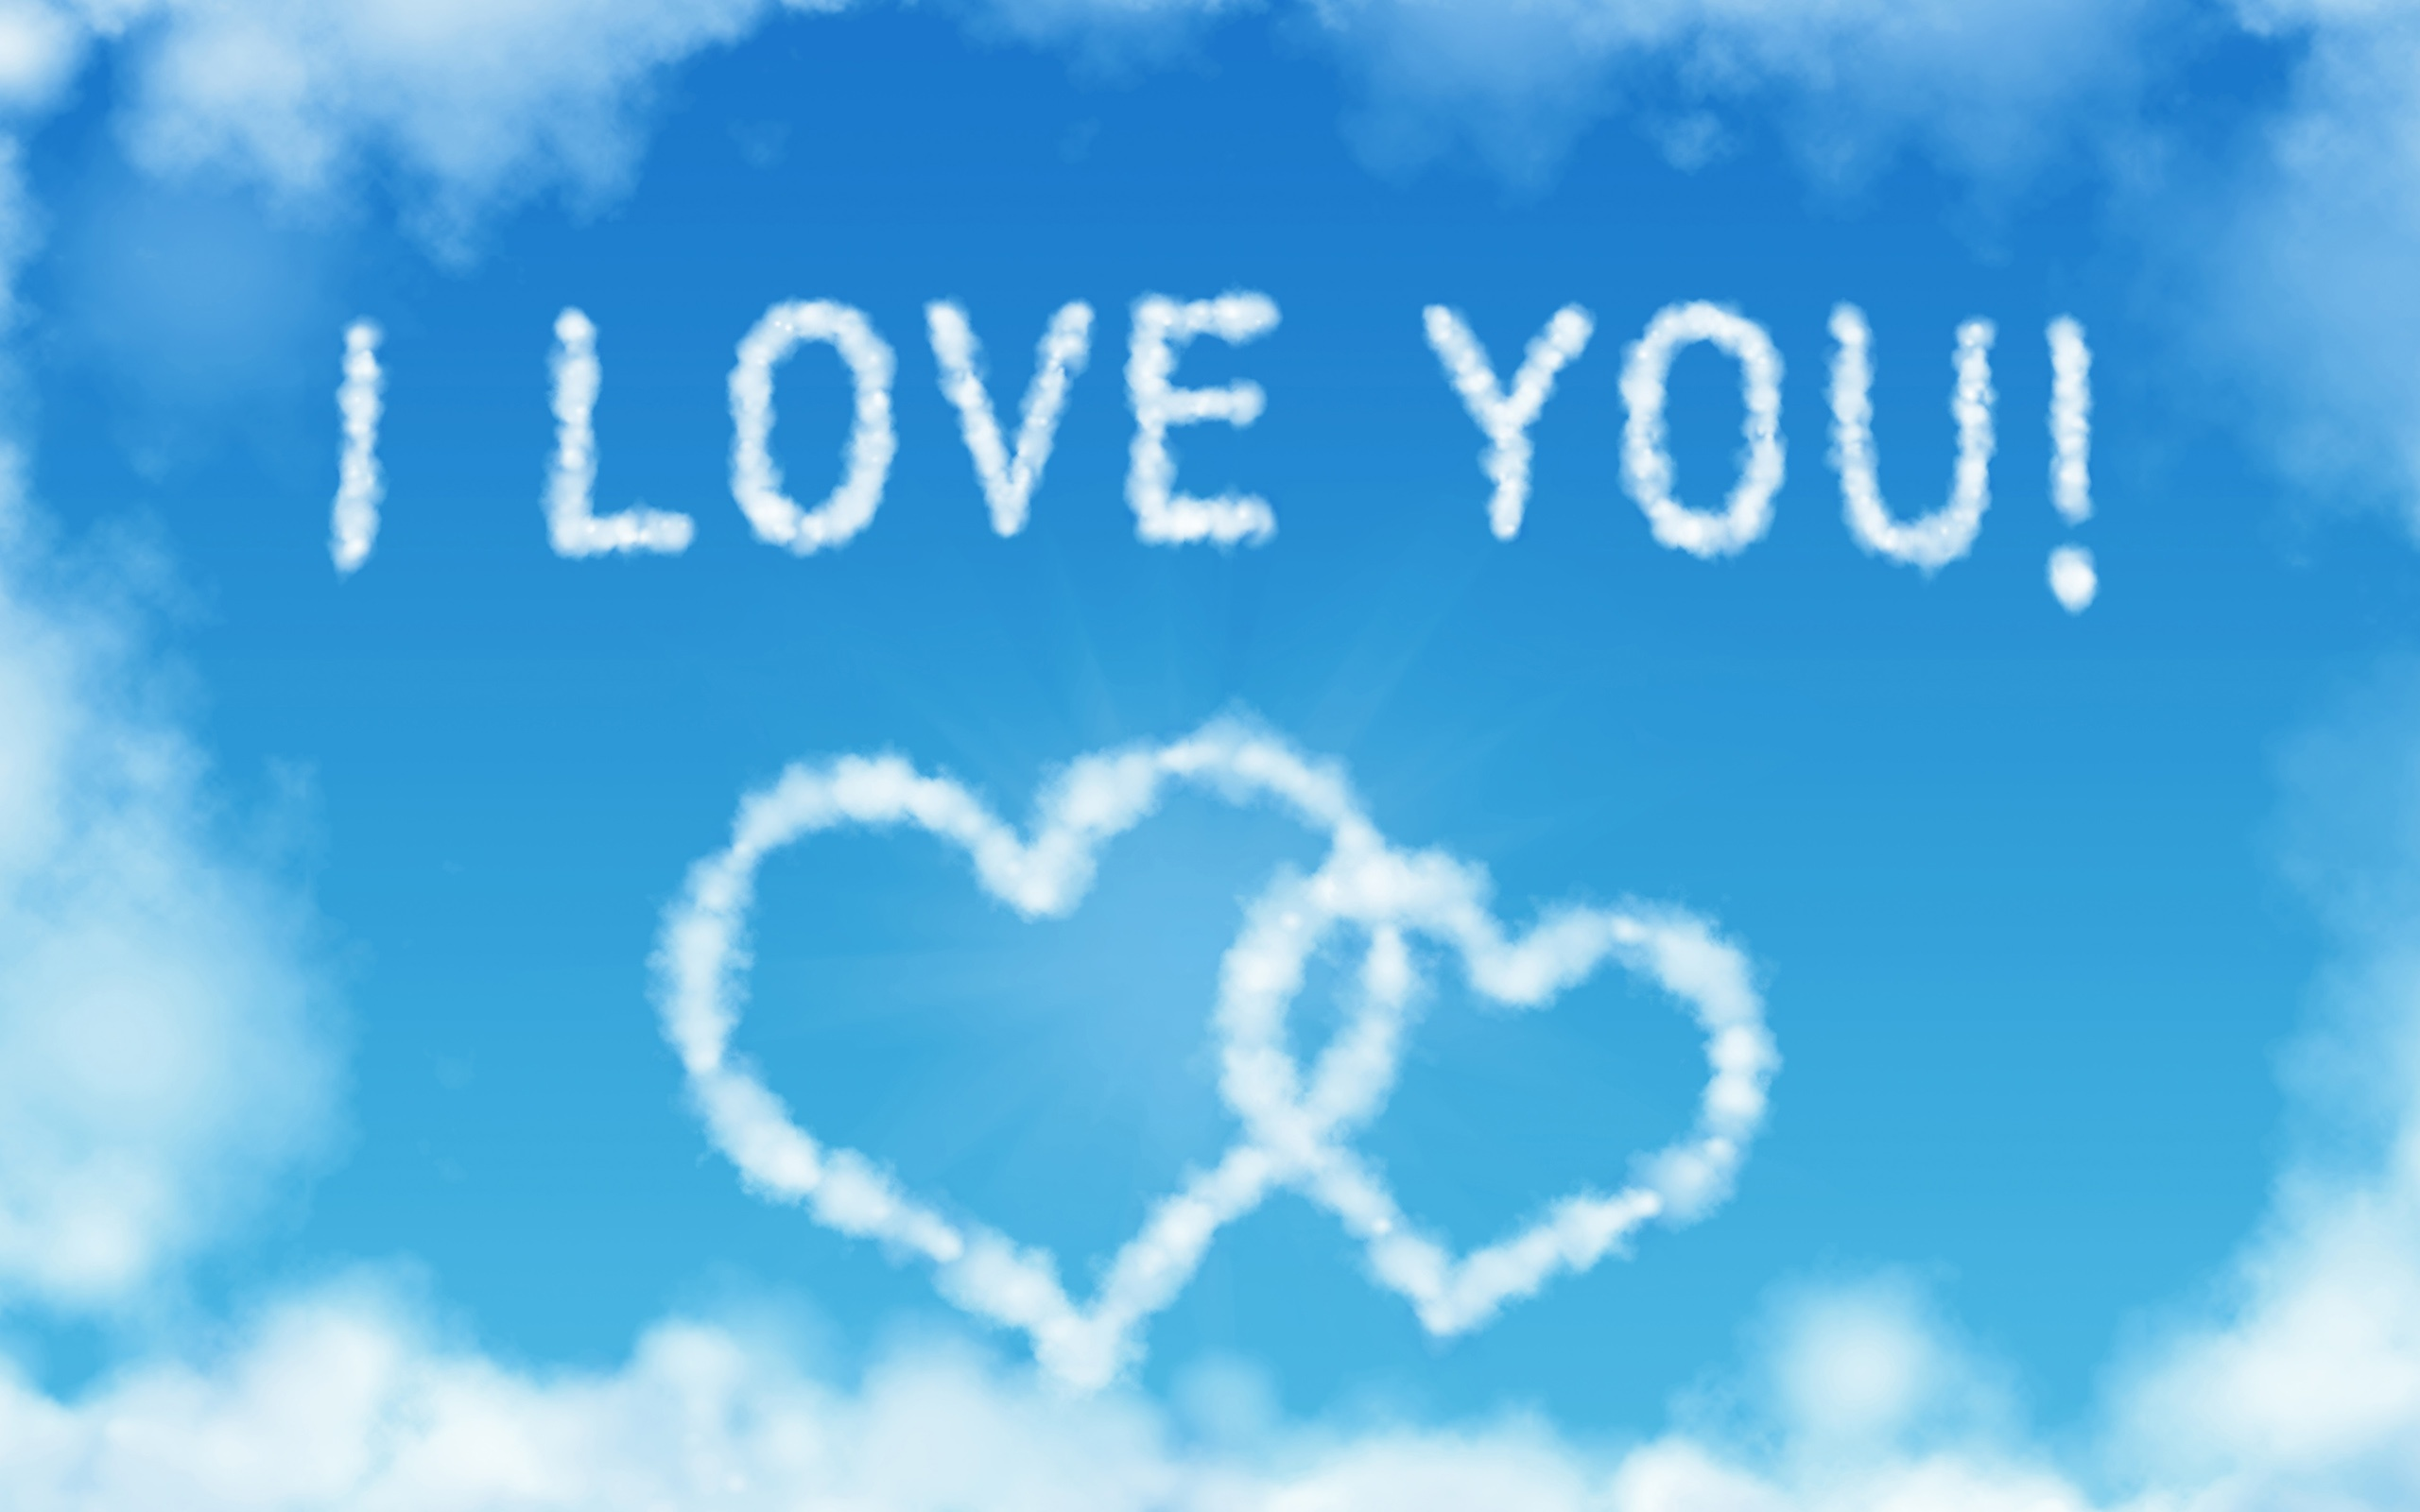 wallpaper i love you, heart-shaped clouds in the blue sky 2560x1600